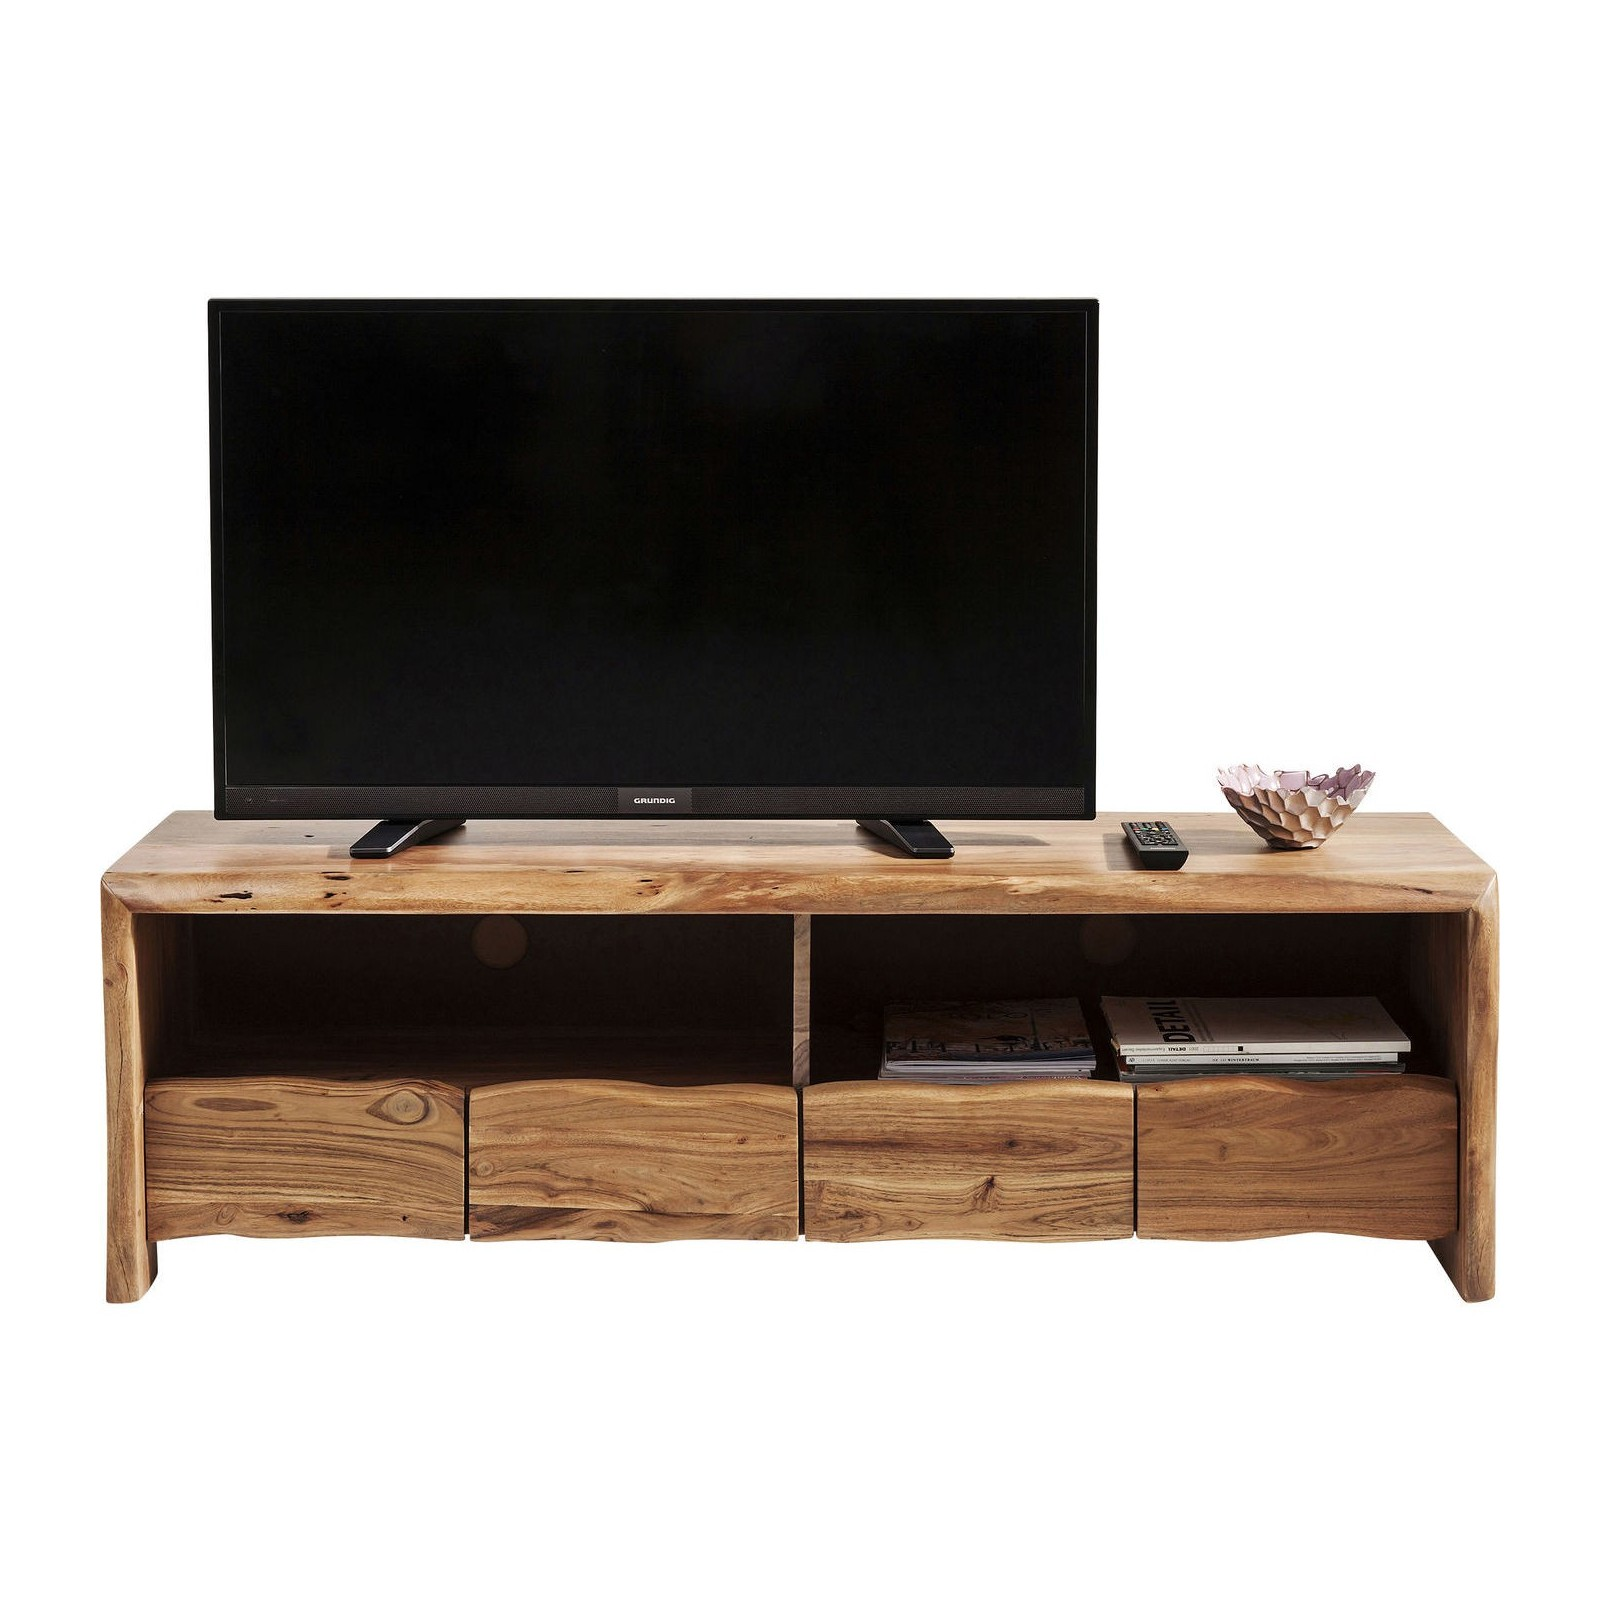 Meuble Tv Scandinave En Bois Pure Nature Kare Design # Magasin De Meuble Tv